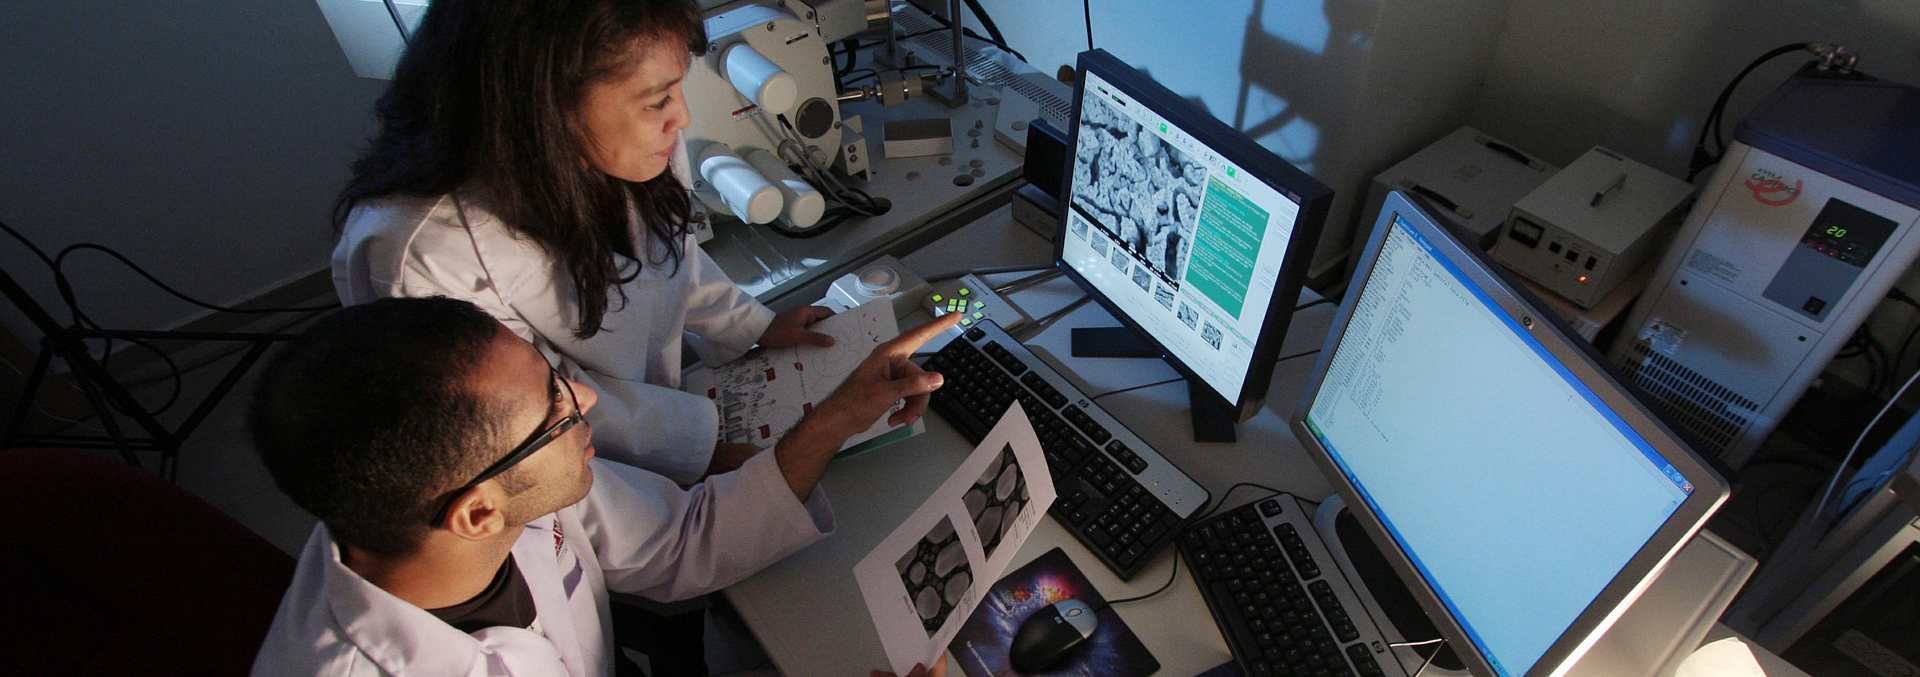 Crohn's and Colitis researchers looking at imagery on a computer